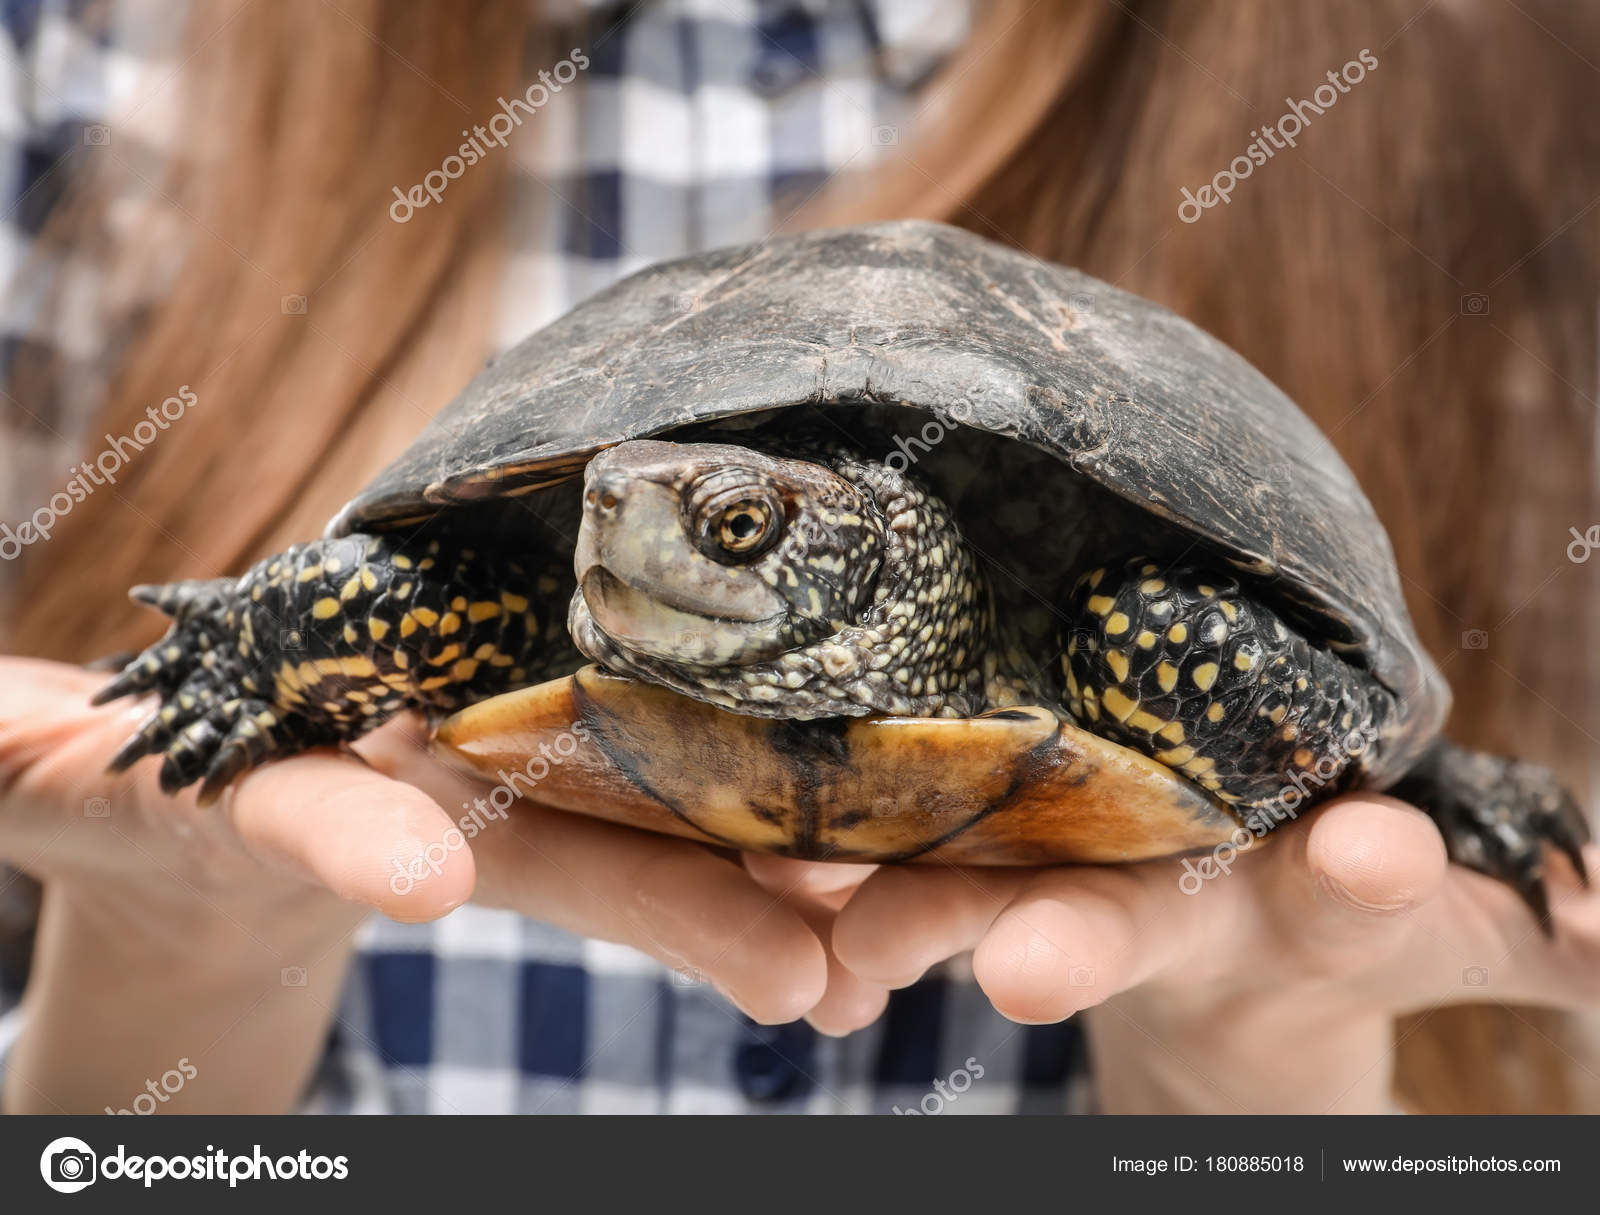 Turtle pet closeup photo